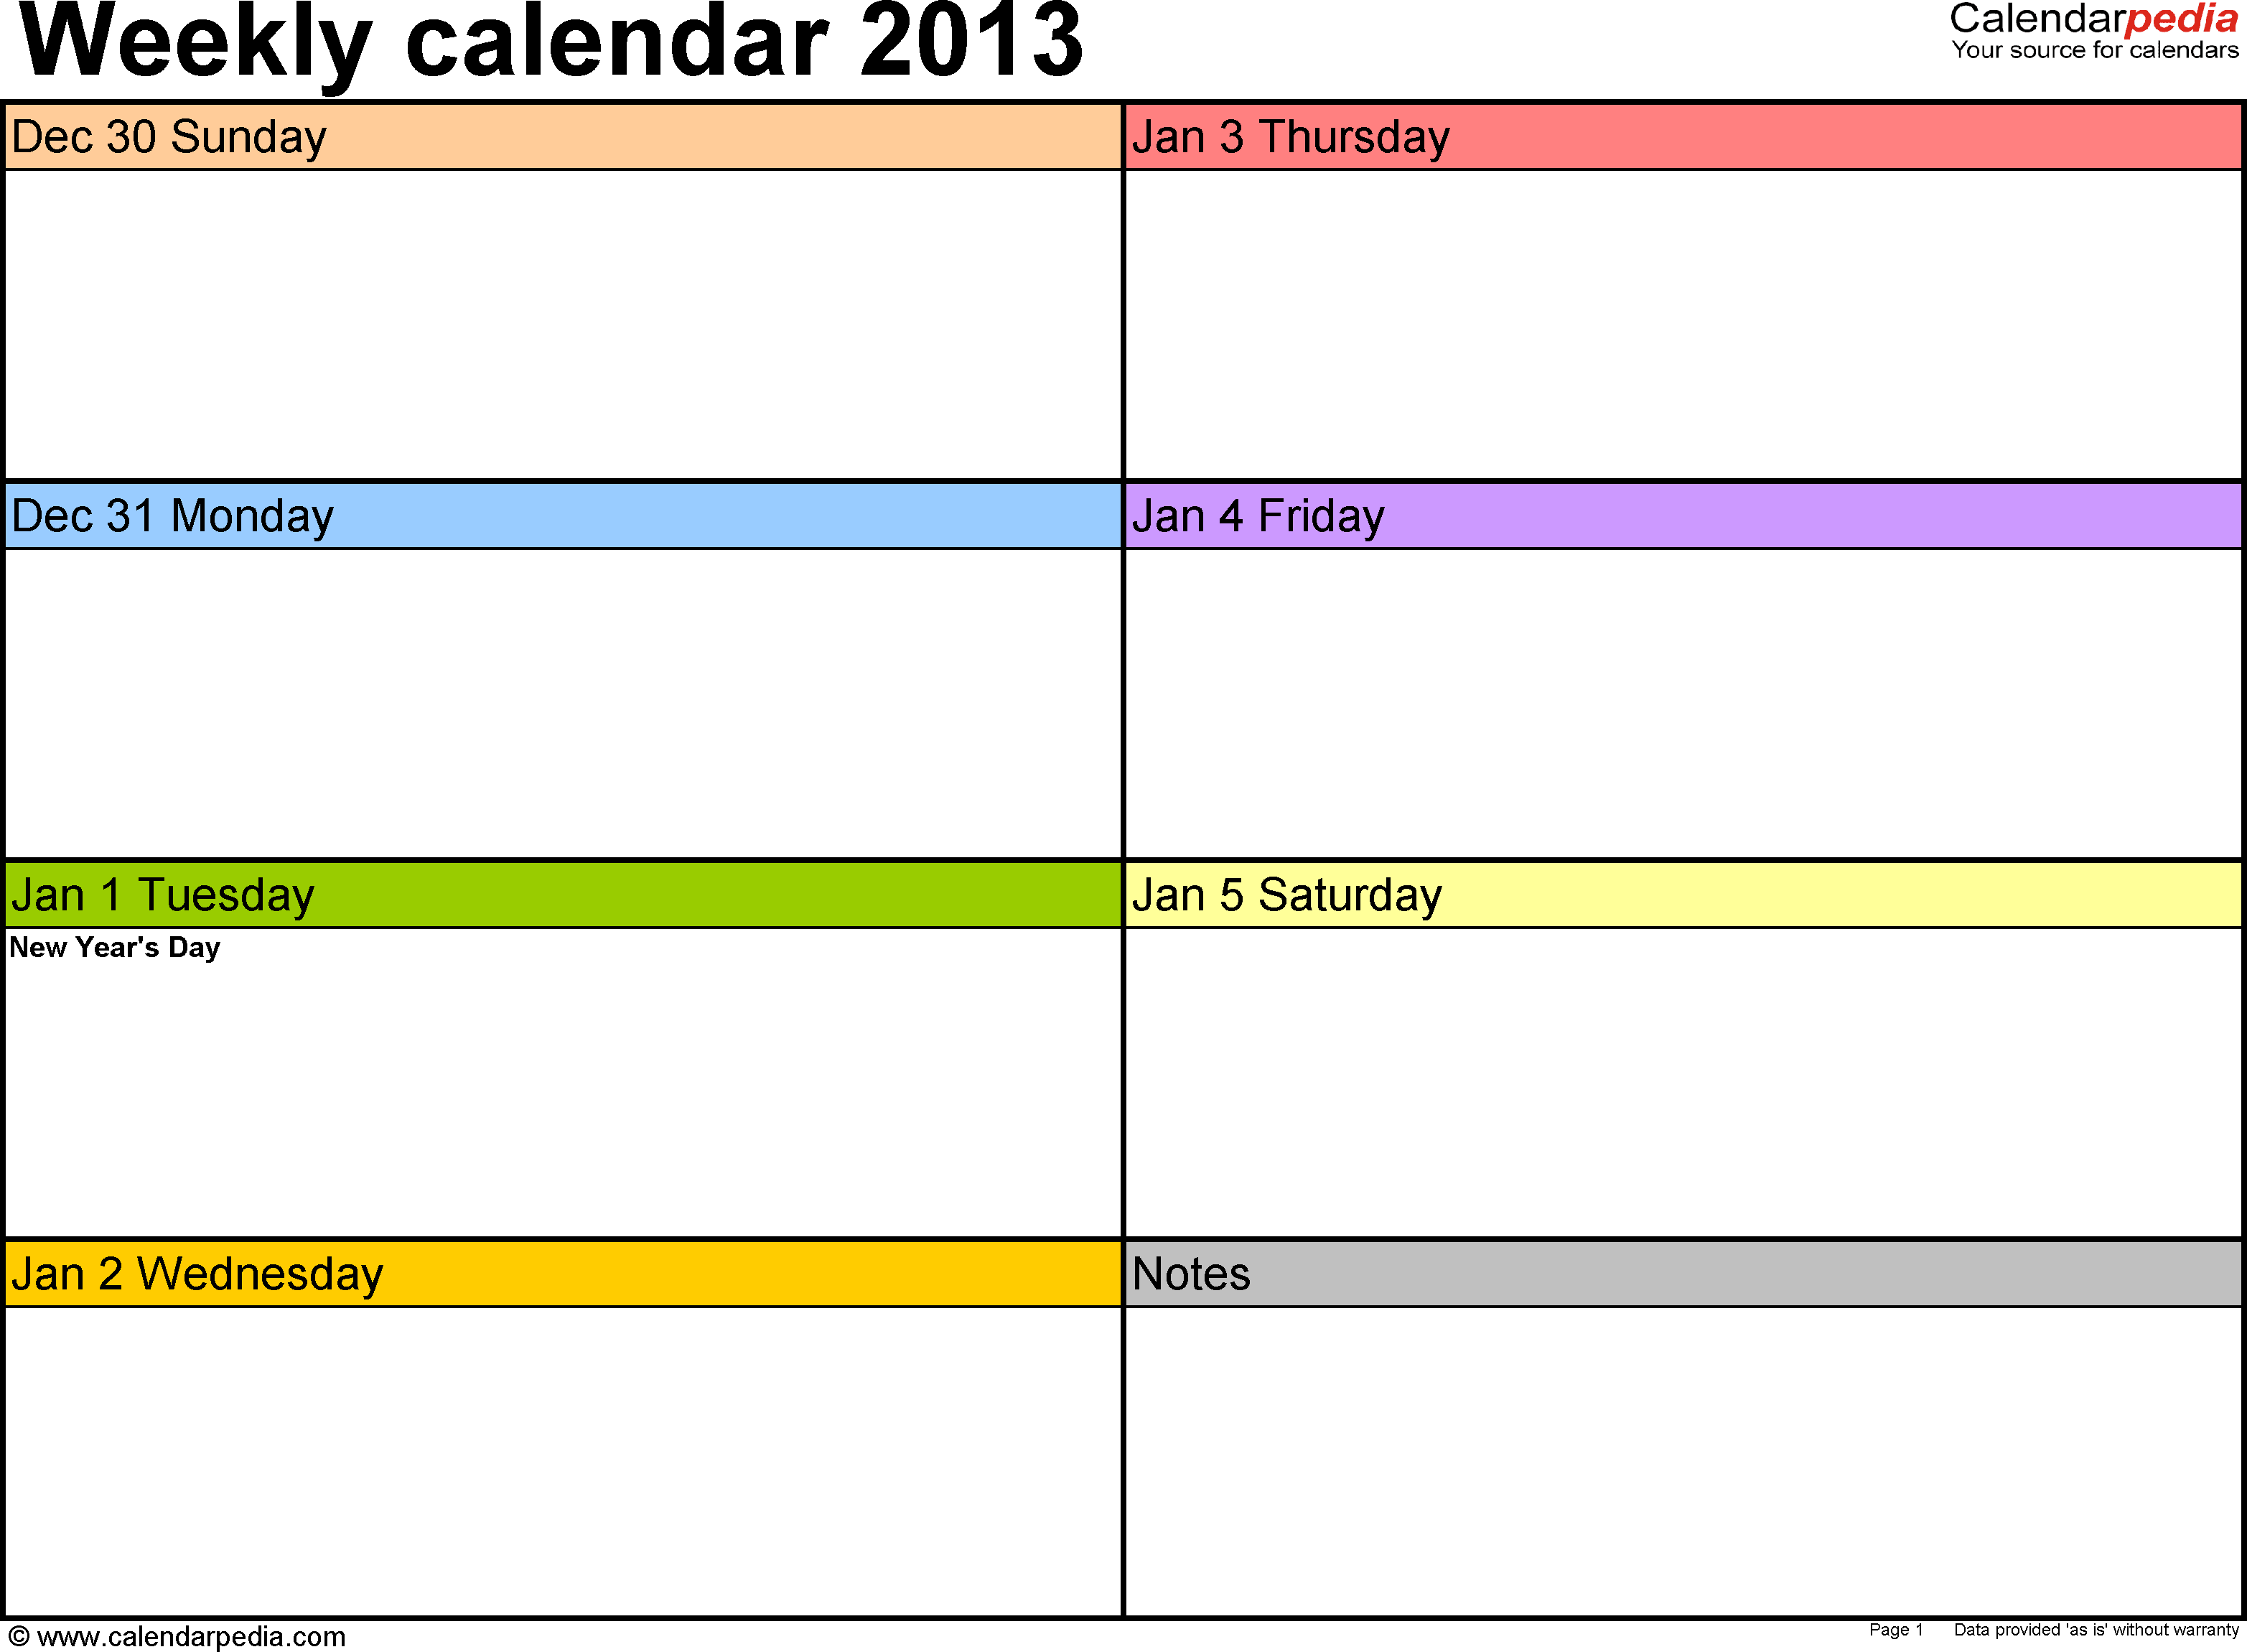 Weekly calendar 2013: template for Excel version 2, landscape, 53 pages, in color, week divided into 2 columns (7 days and one field for notes)